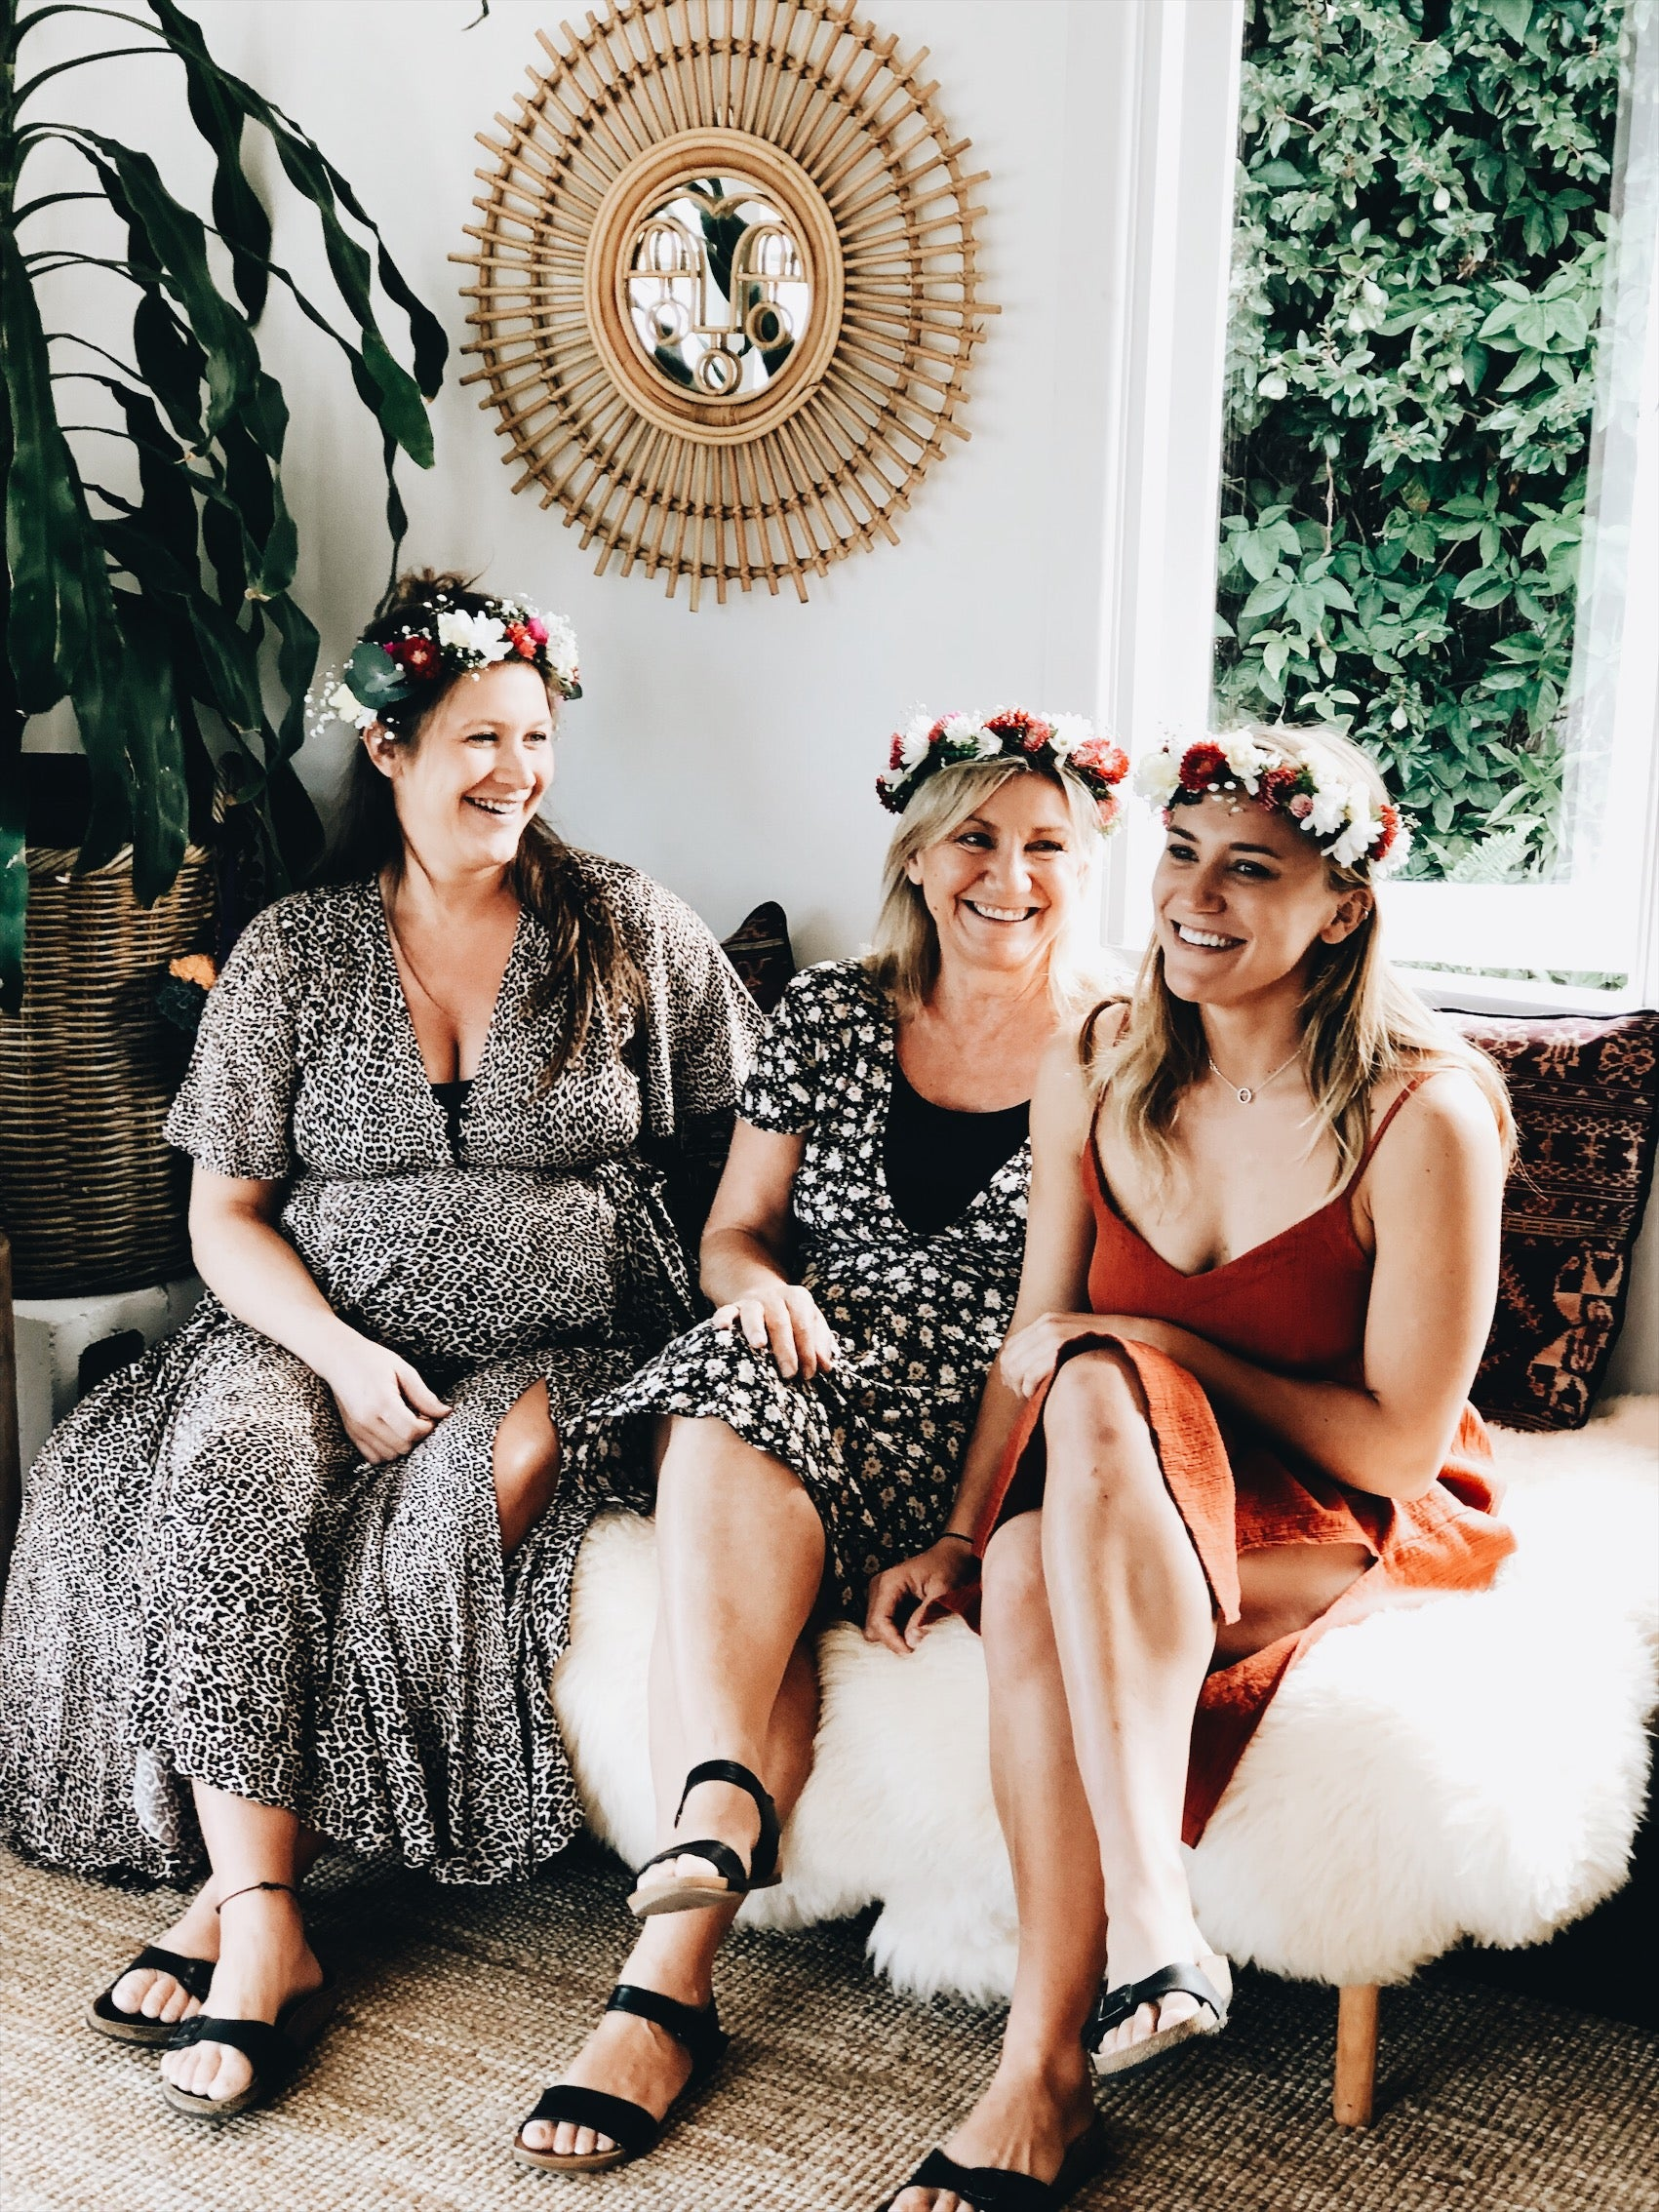 3 girls at a craft party with their handmade flower crown